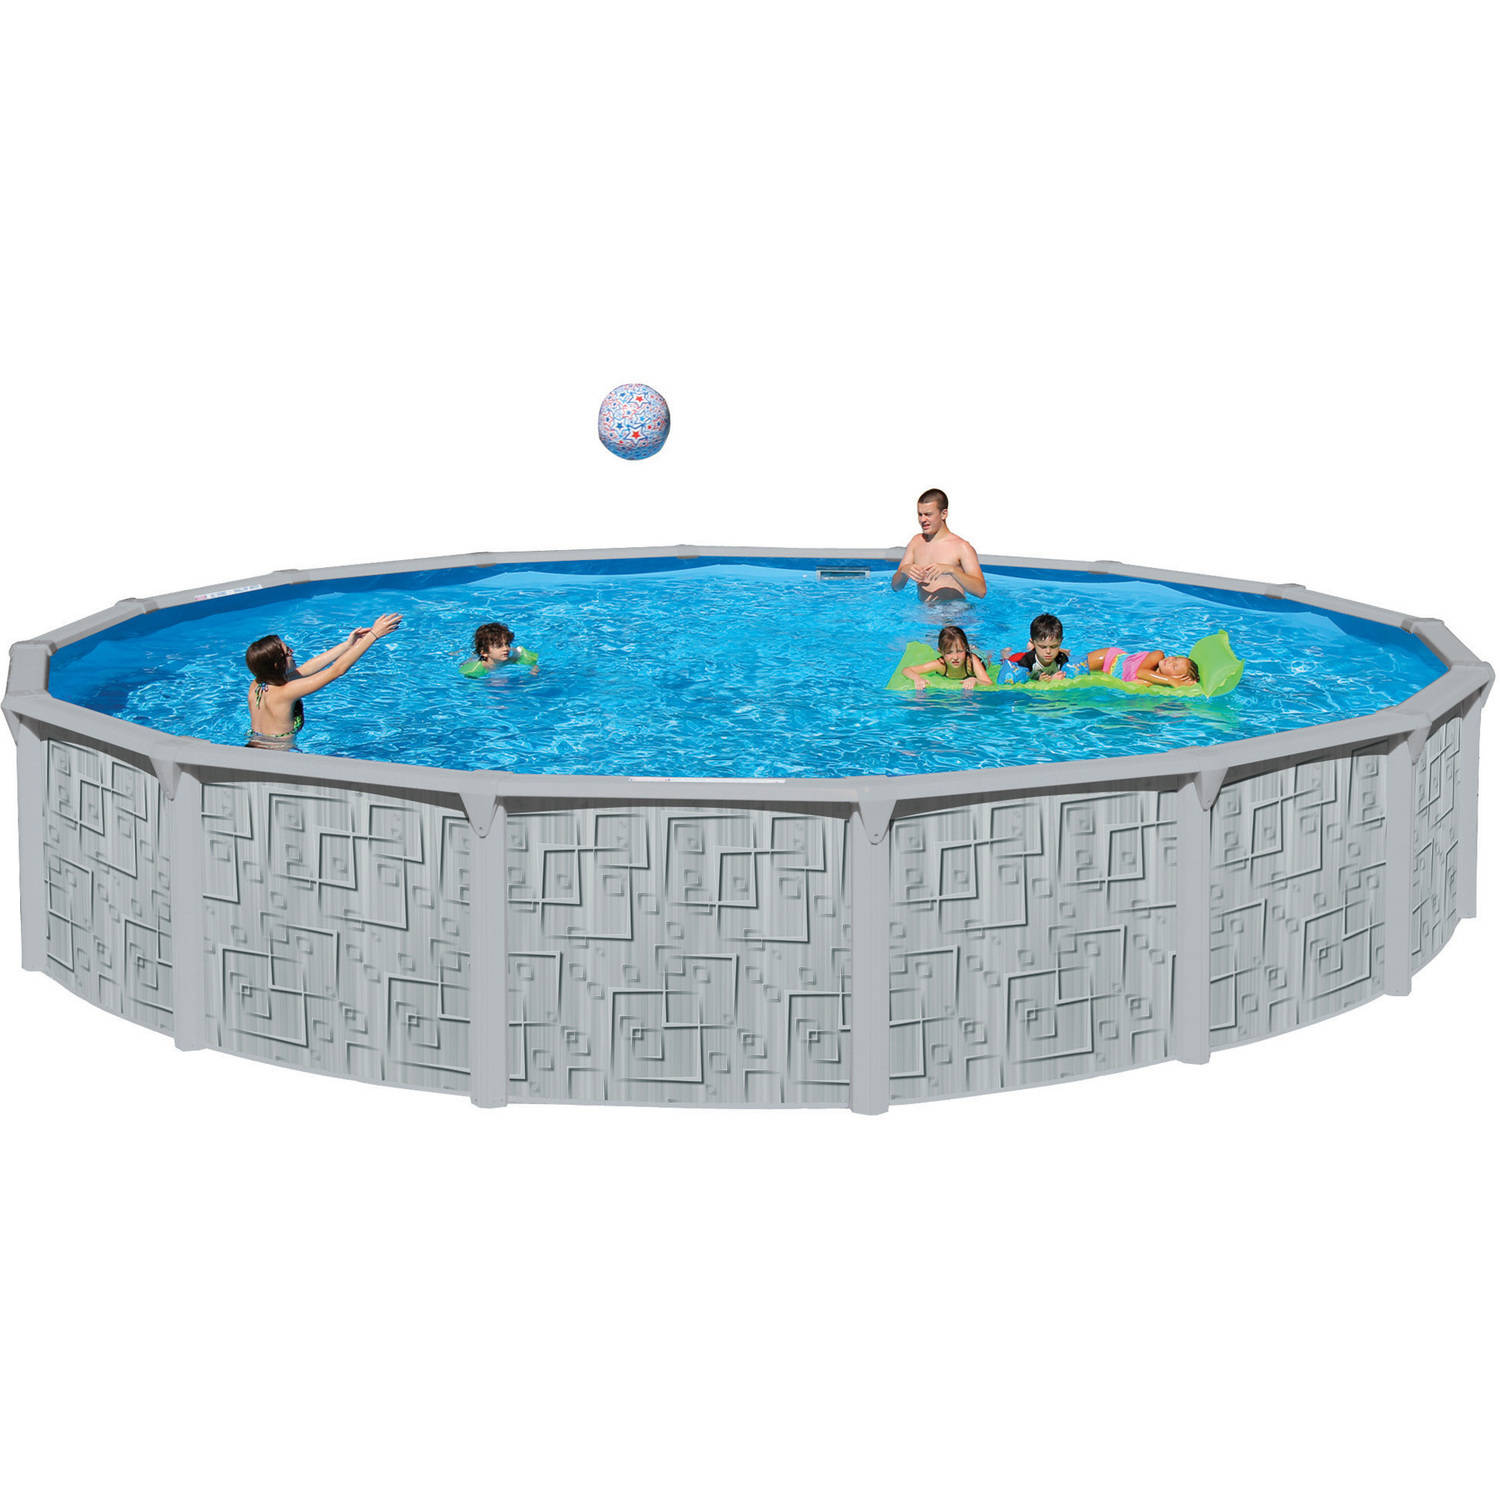 "Heritage 24' x 52"" Illusion Steel Wall Above Ground Swimming Pool by Heritage"